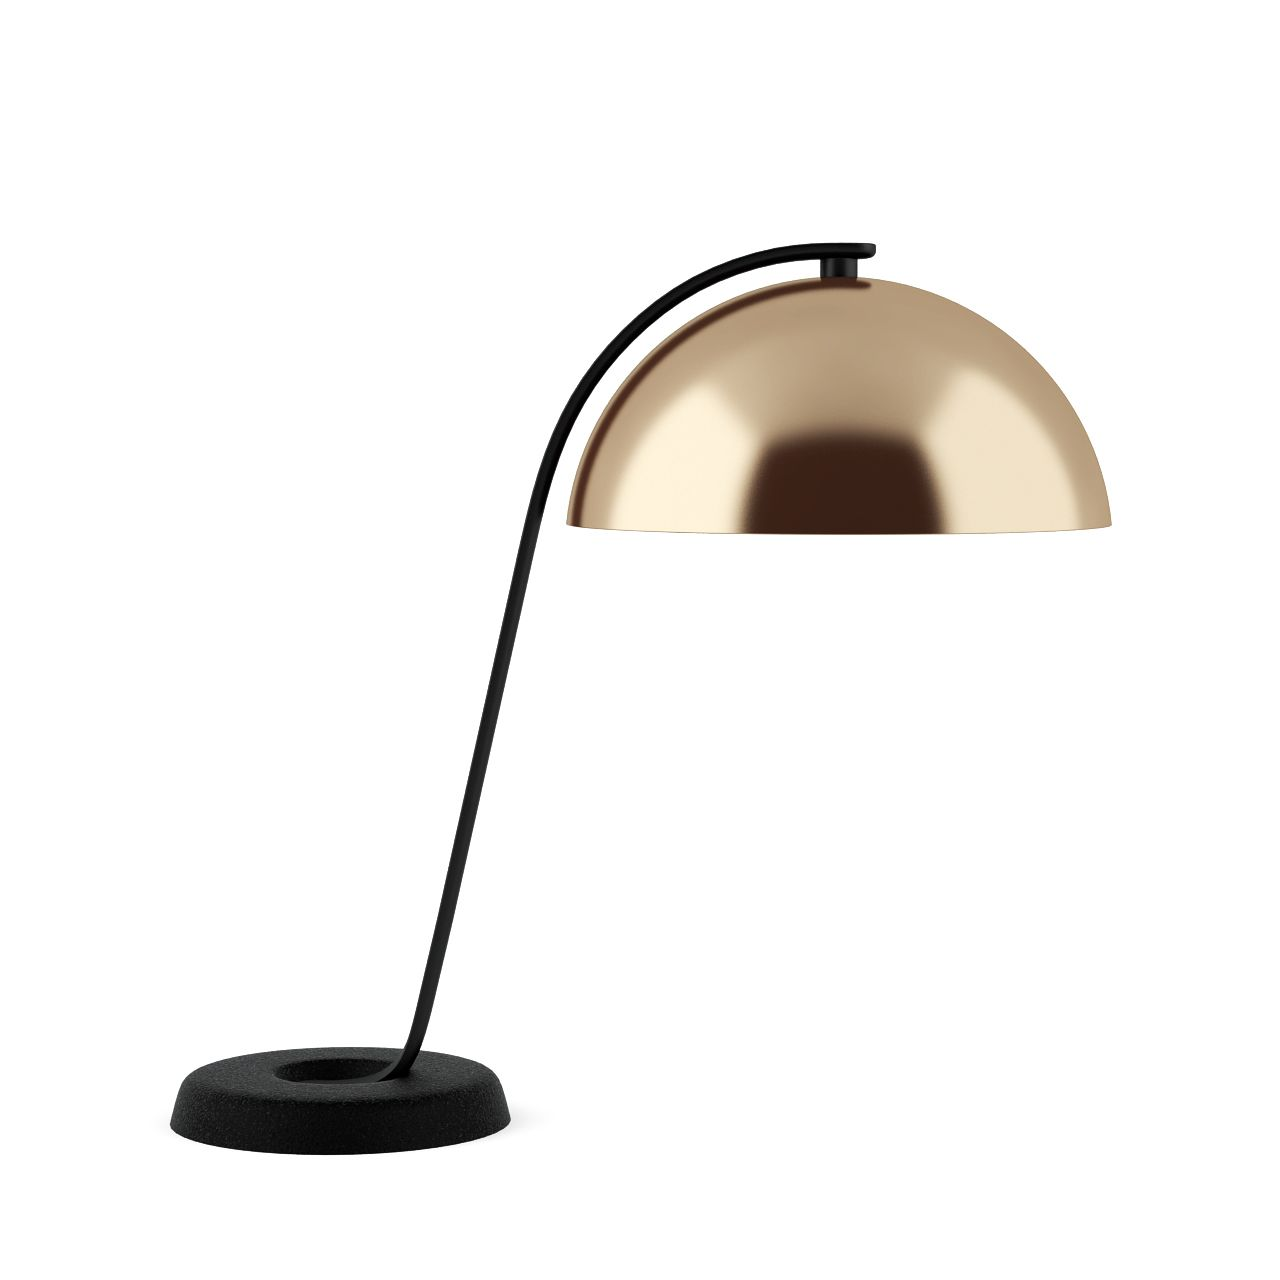 Free 3d model cloche table lamp by wronglondon httpdimensiva free 3d model cloche table lamp by wronglondon httpdimensiva geotapseo Choice Image